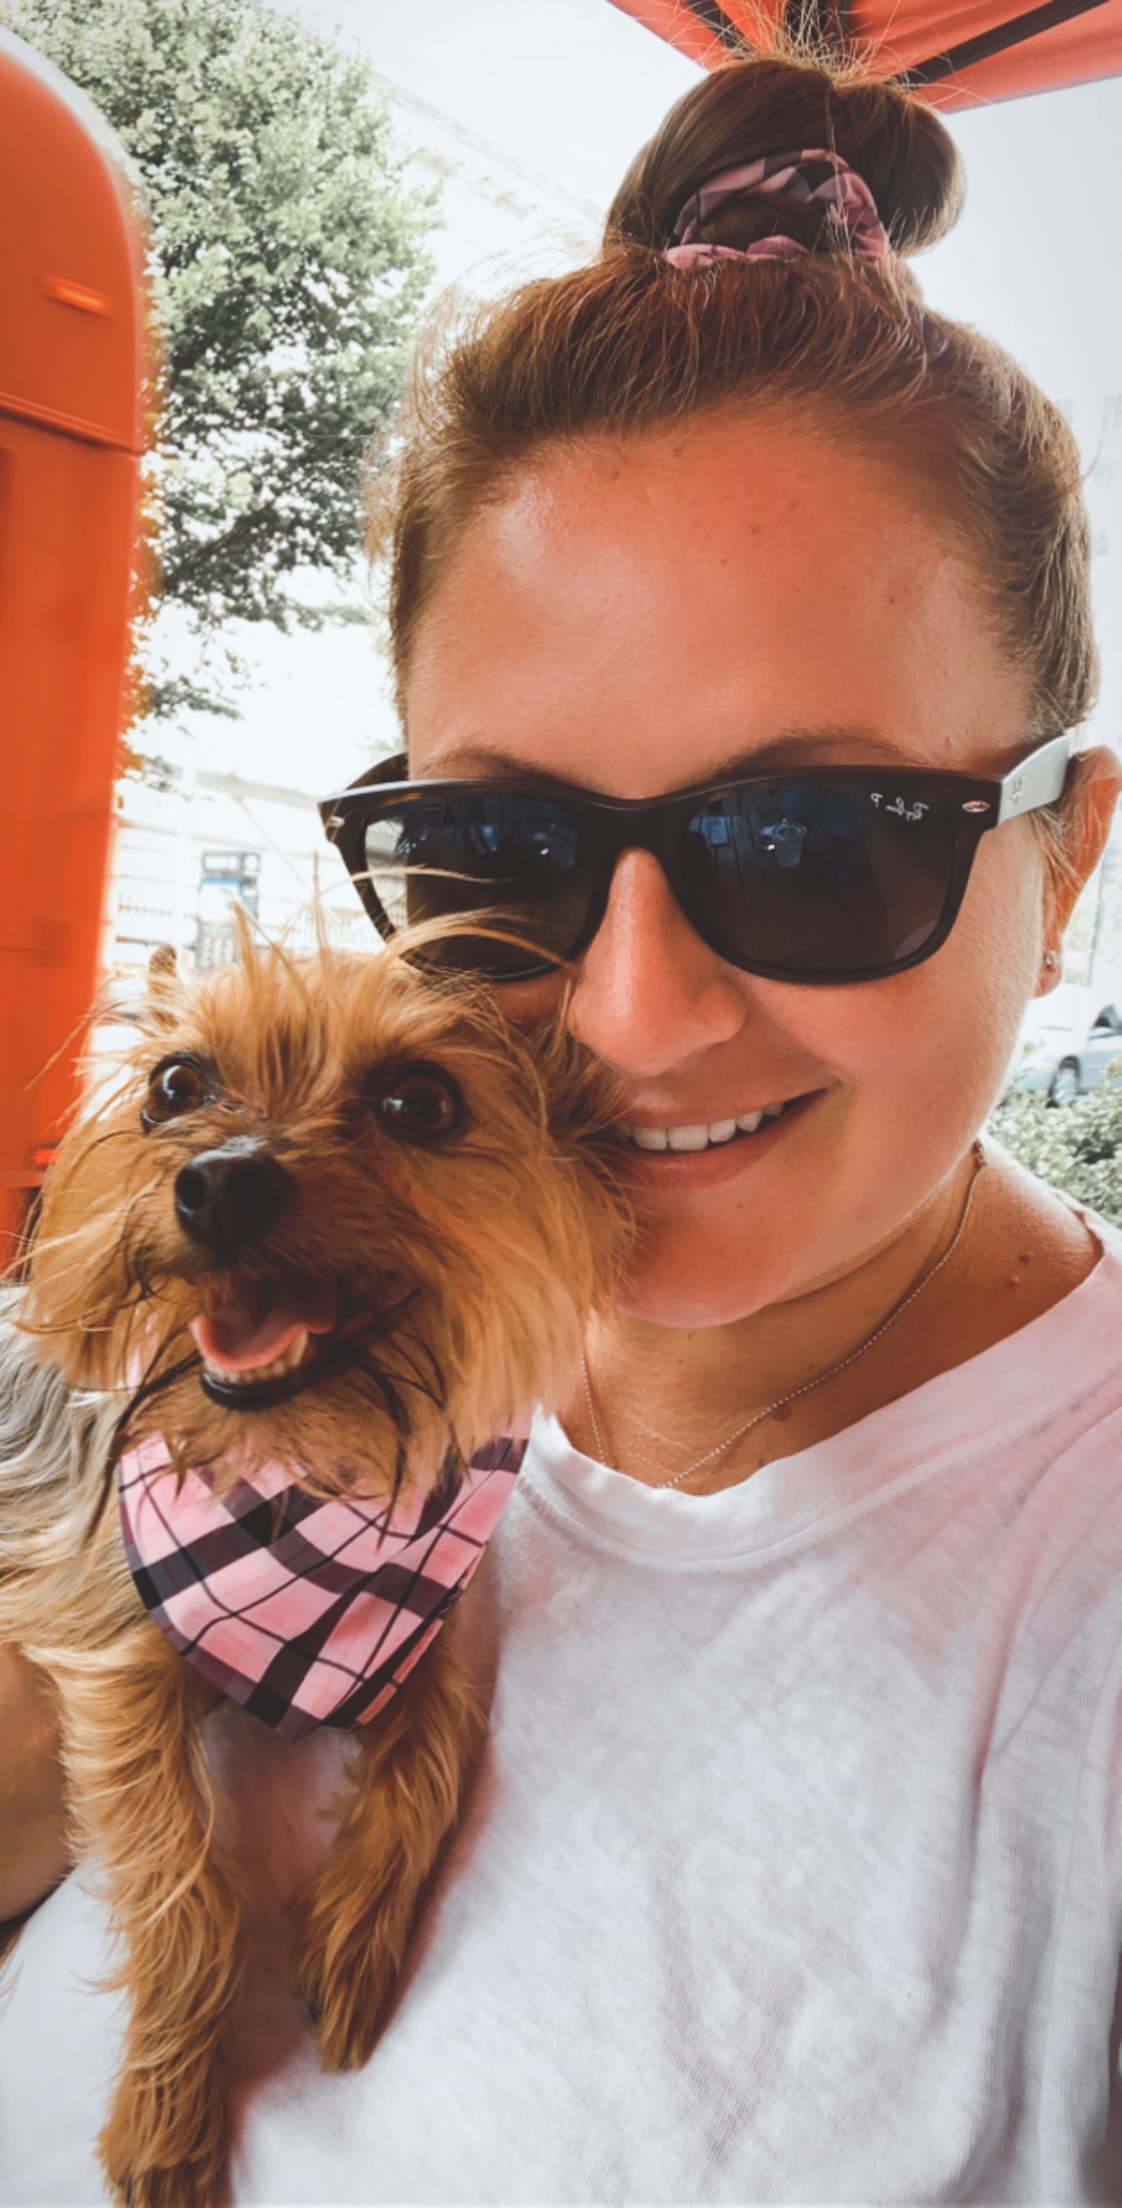 Person with sunglasses holding dog.